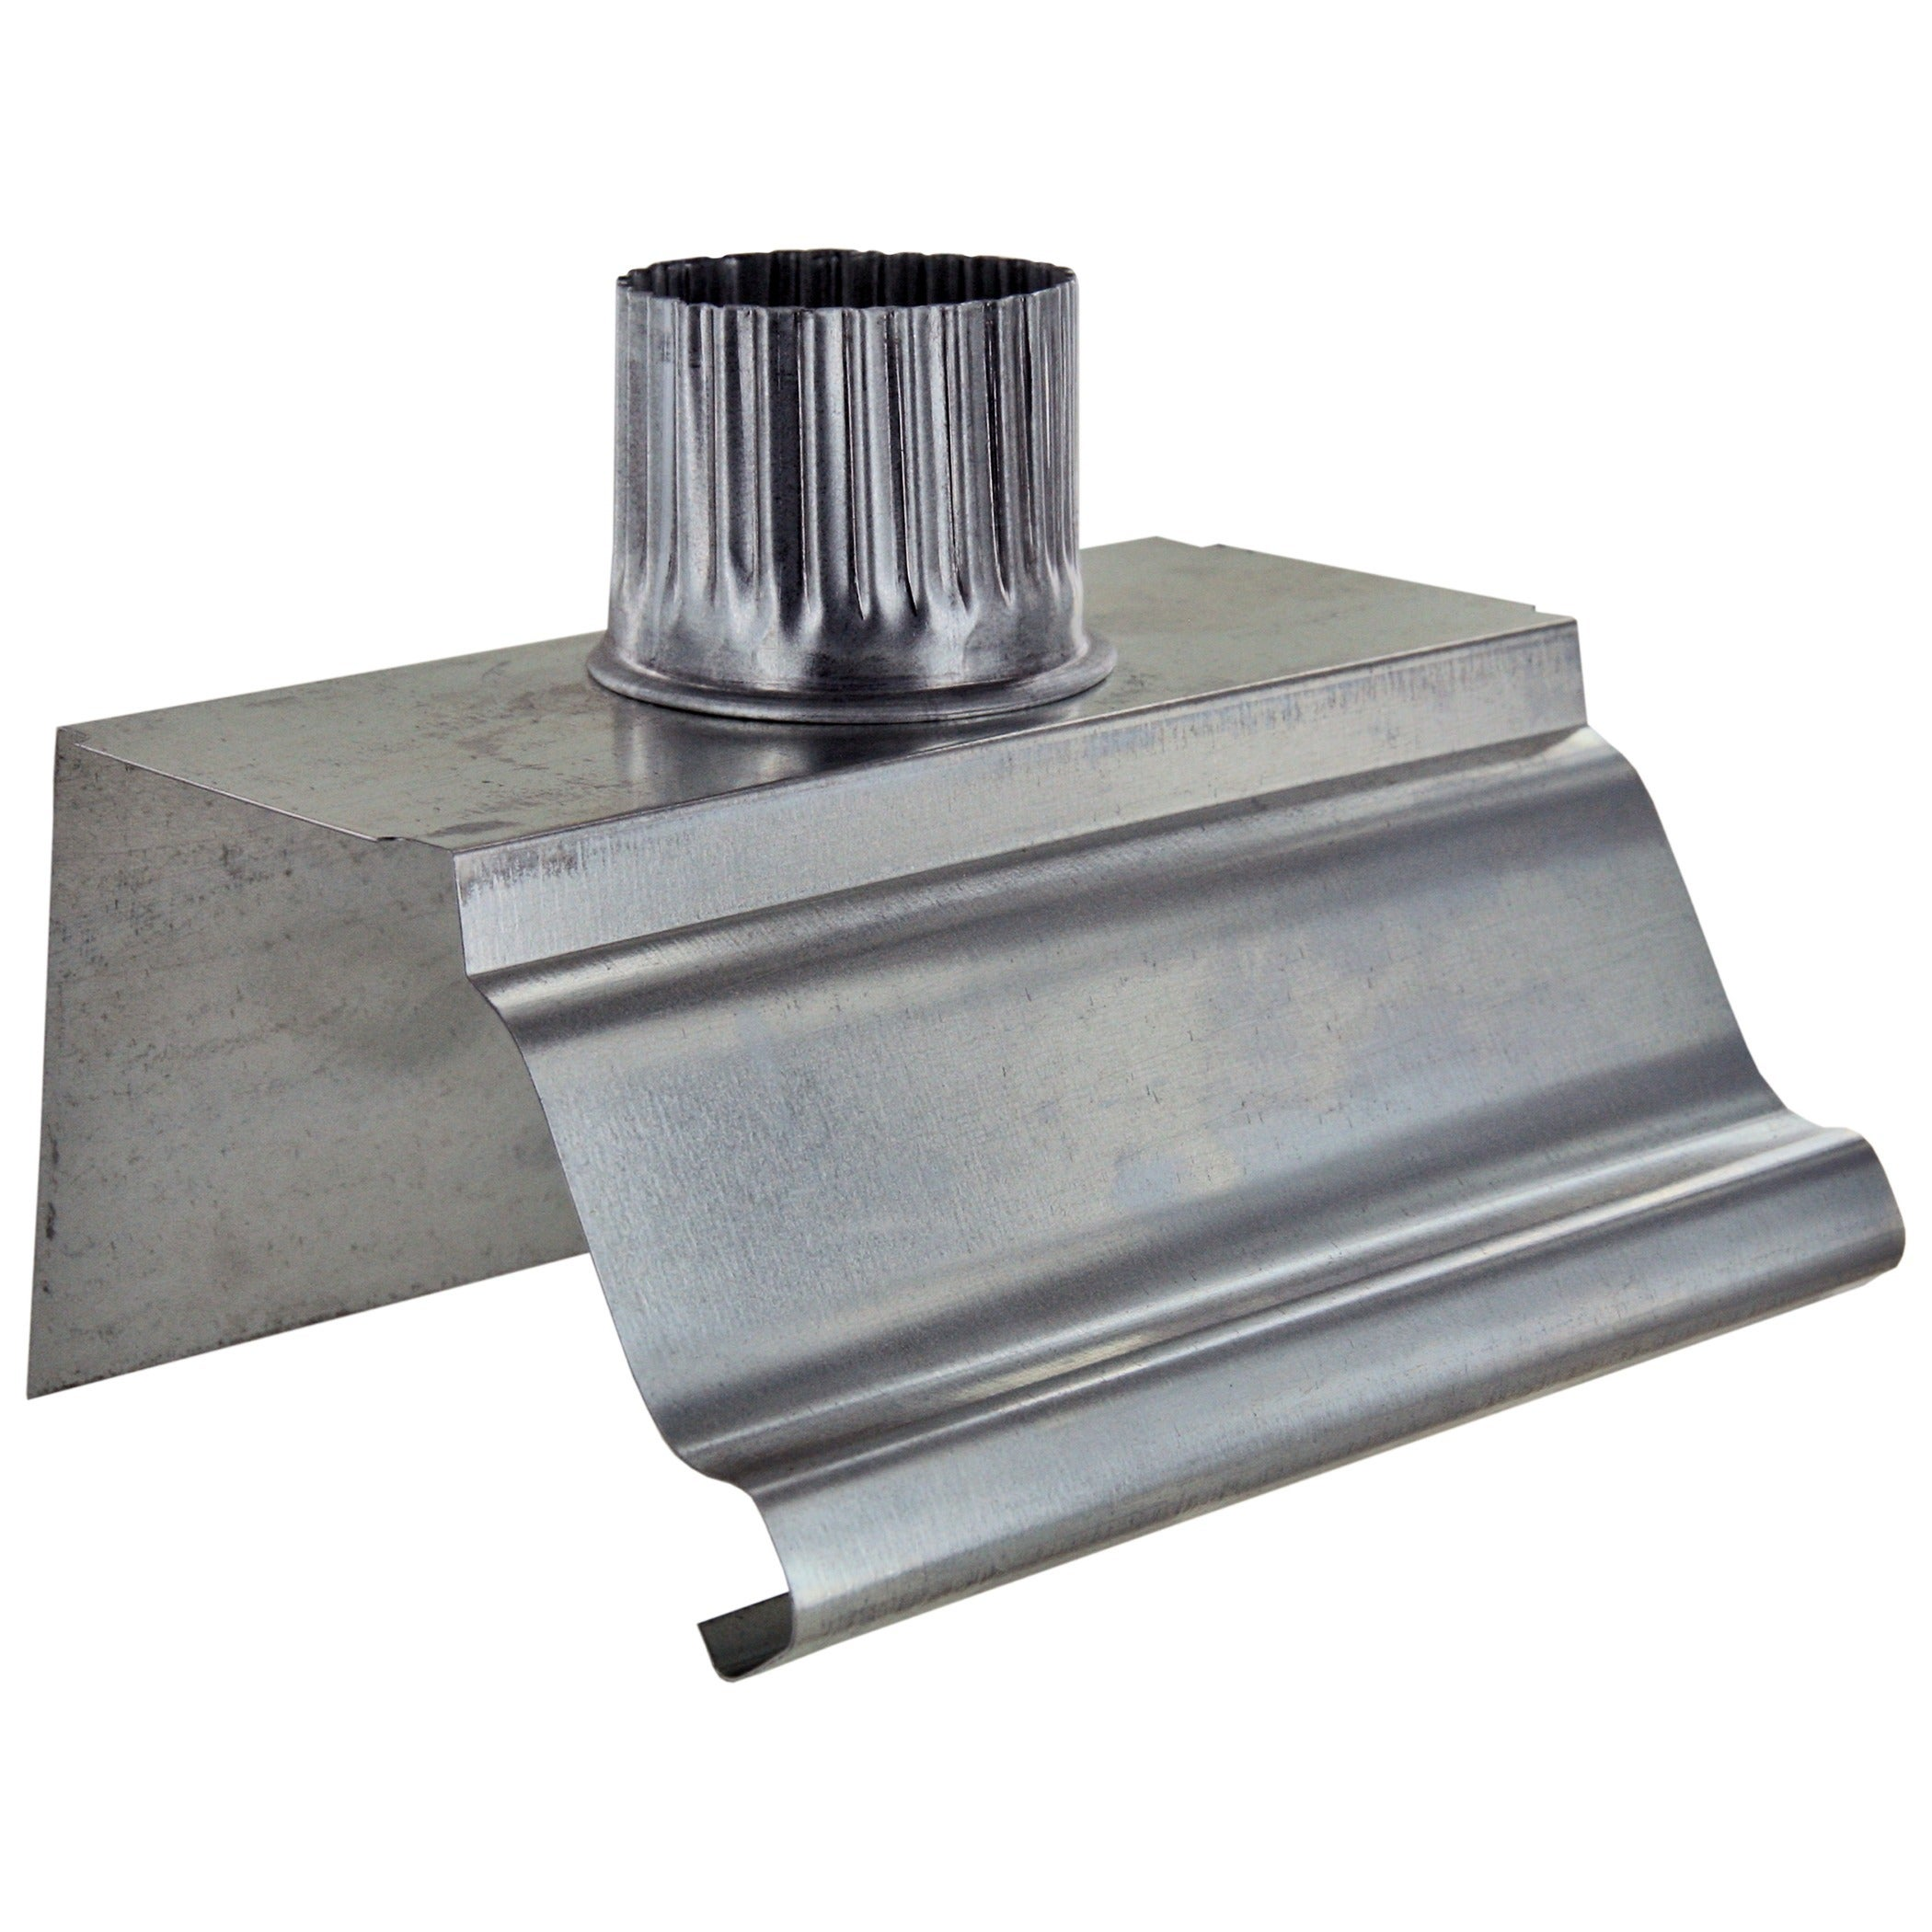 Norwesco 223006 4-inch x 2-inch Galvanized Outlet Section...